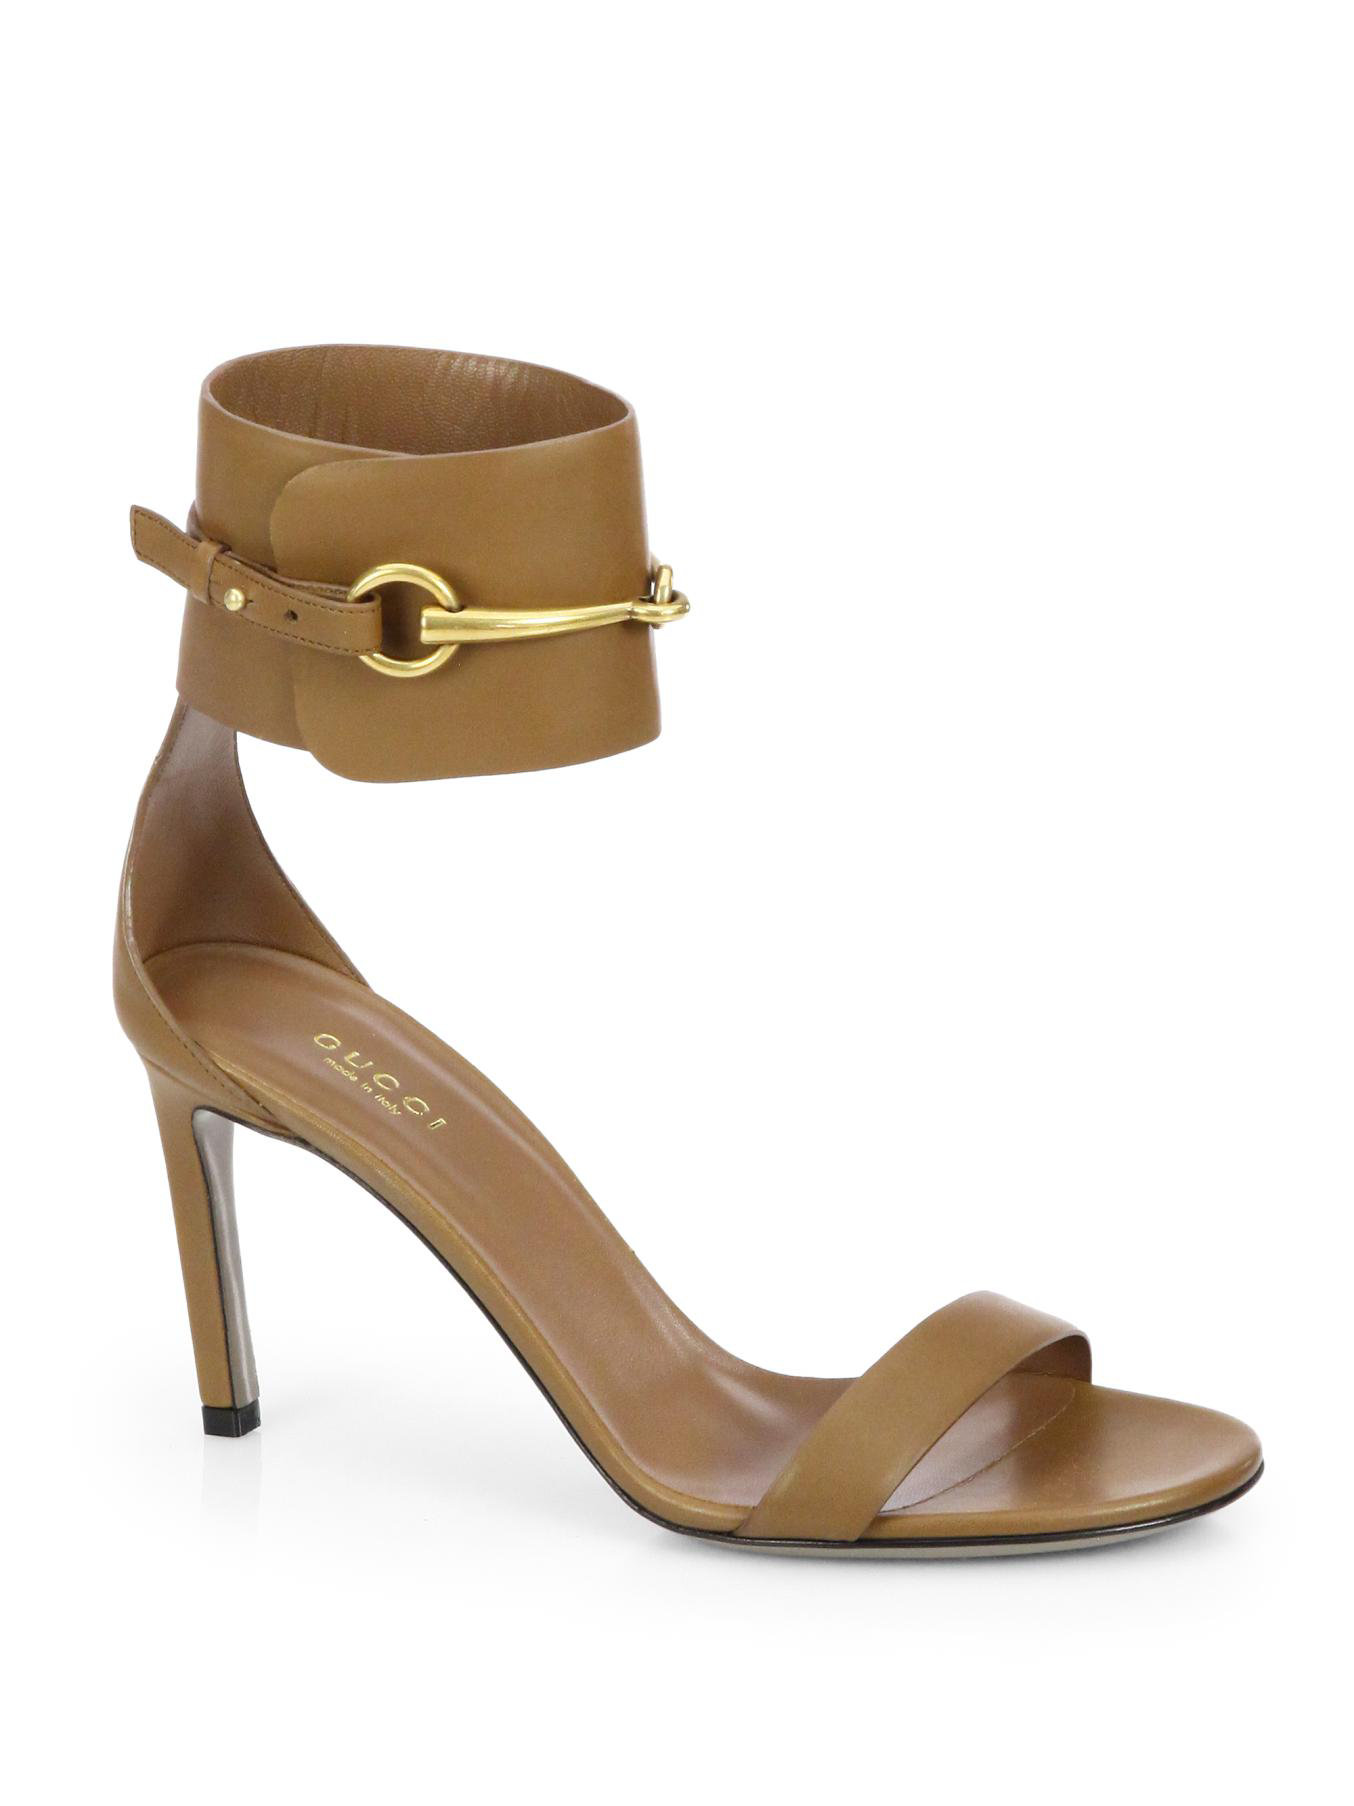 951b83ec1 Gucci Ursula Leather Horsebit Sandals in Brown - Lyst